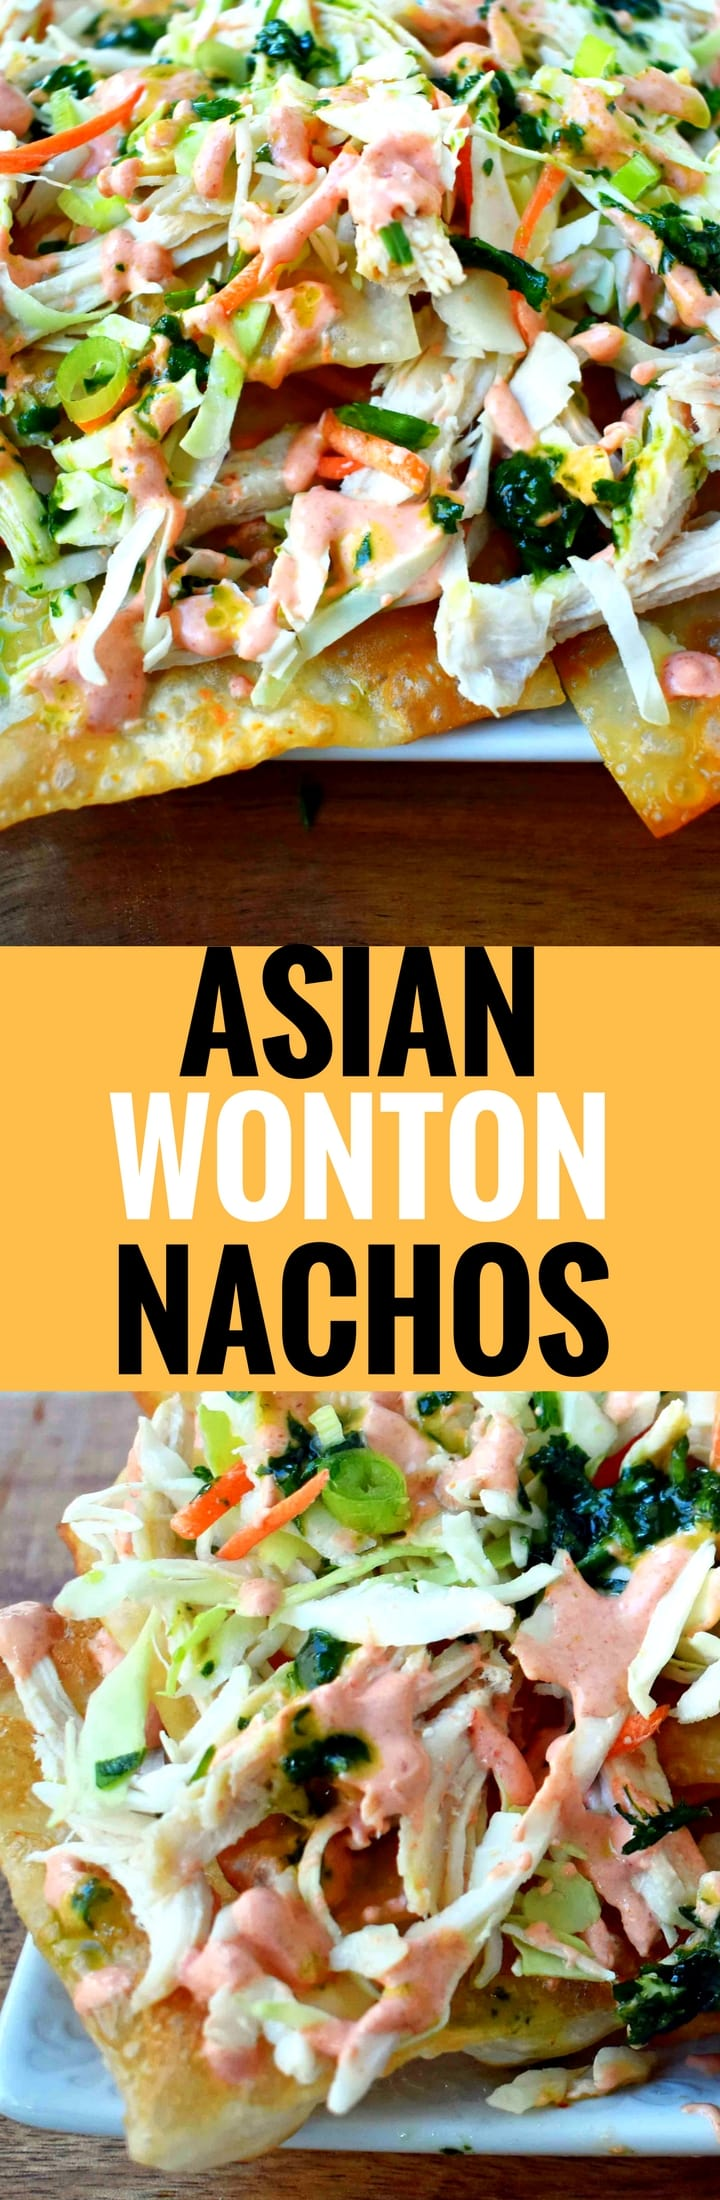 Asian Wonton Chicken Nachos made with homemade fried wontons, pulled chicken, sriracha cream sauce, cabbage mix, and a sweet cilantro lime sauce.  An Asian influenced appetizer using fried wontons instead of chips. Amazing! www.modernhoney.com